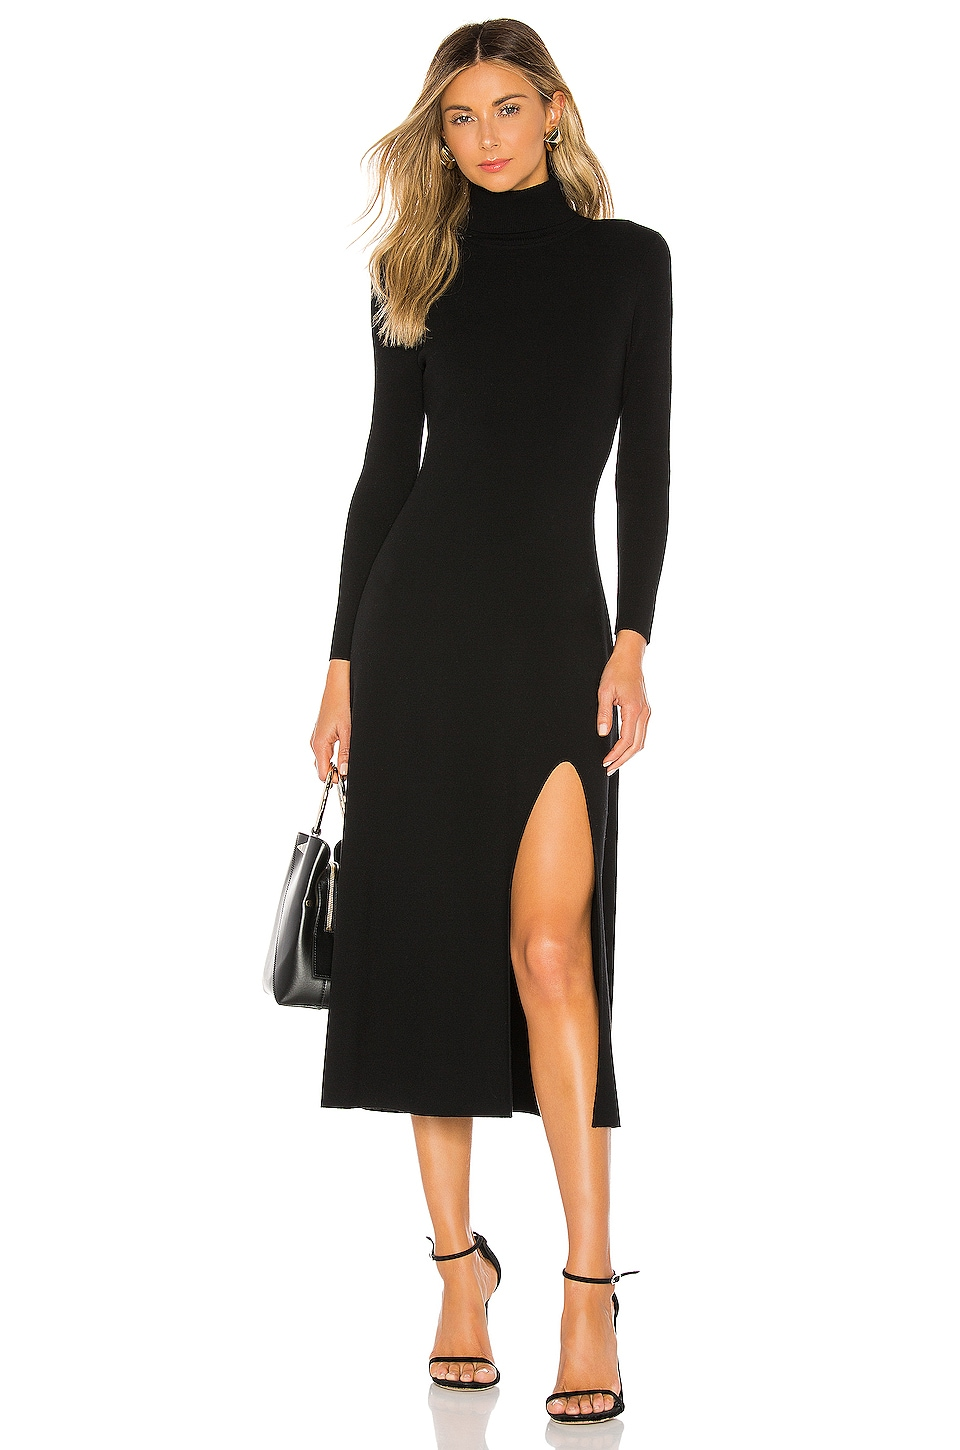 A.L.C. Ambrose Dress in Black